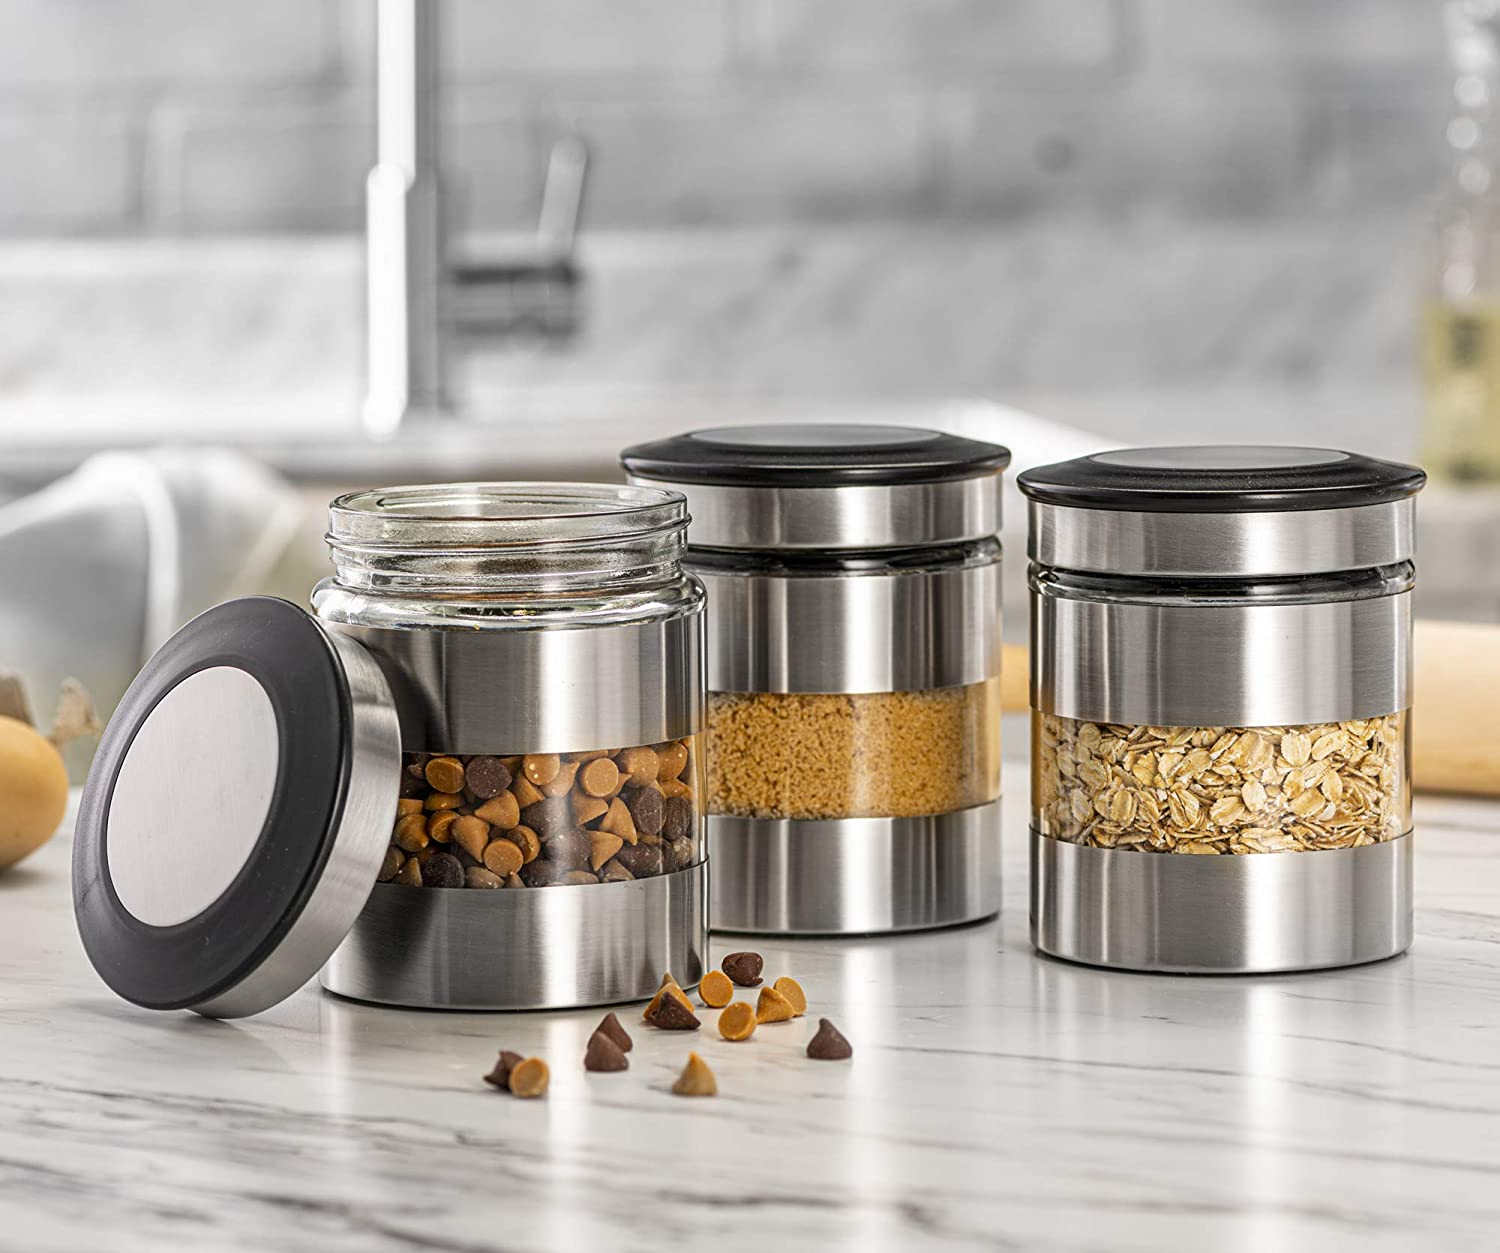 Le'raze Airtight Food Storage Container for Kitchen Counter with Window, [Set of 3] Canister Set Ideal for Flour Tea, Sugar, Coffee, Candy, Cookie Jar